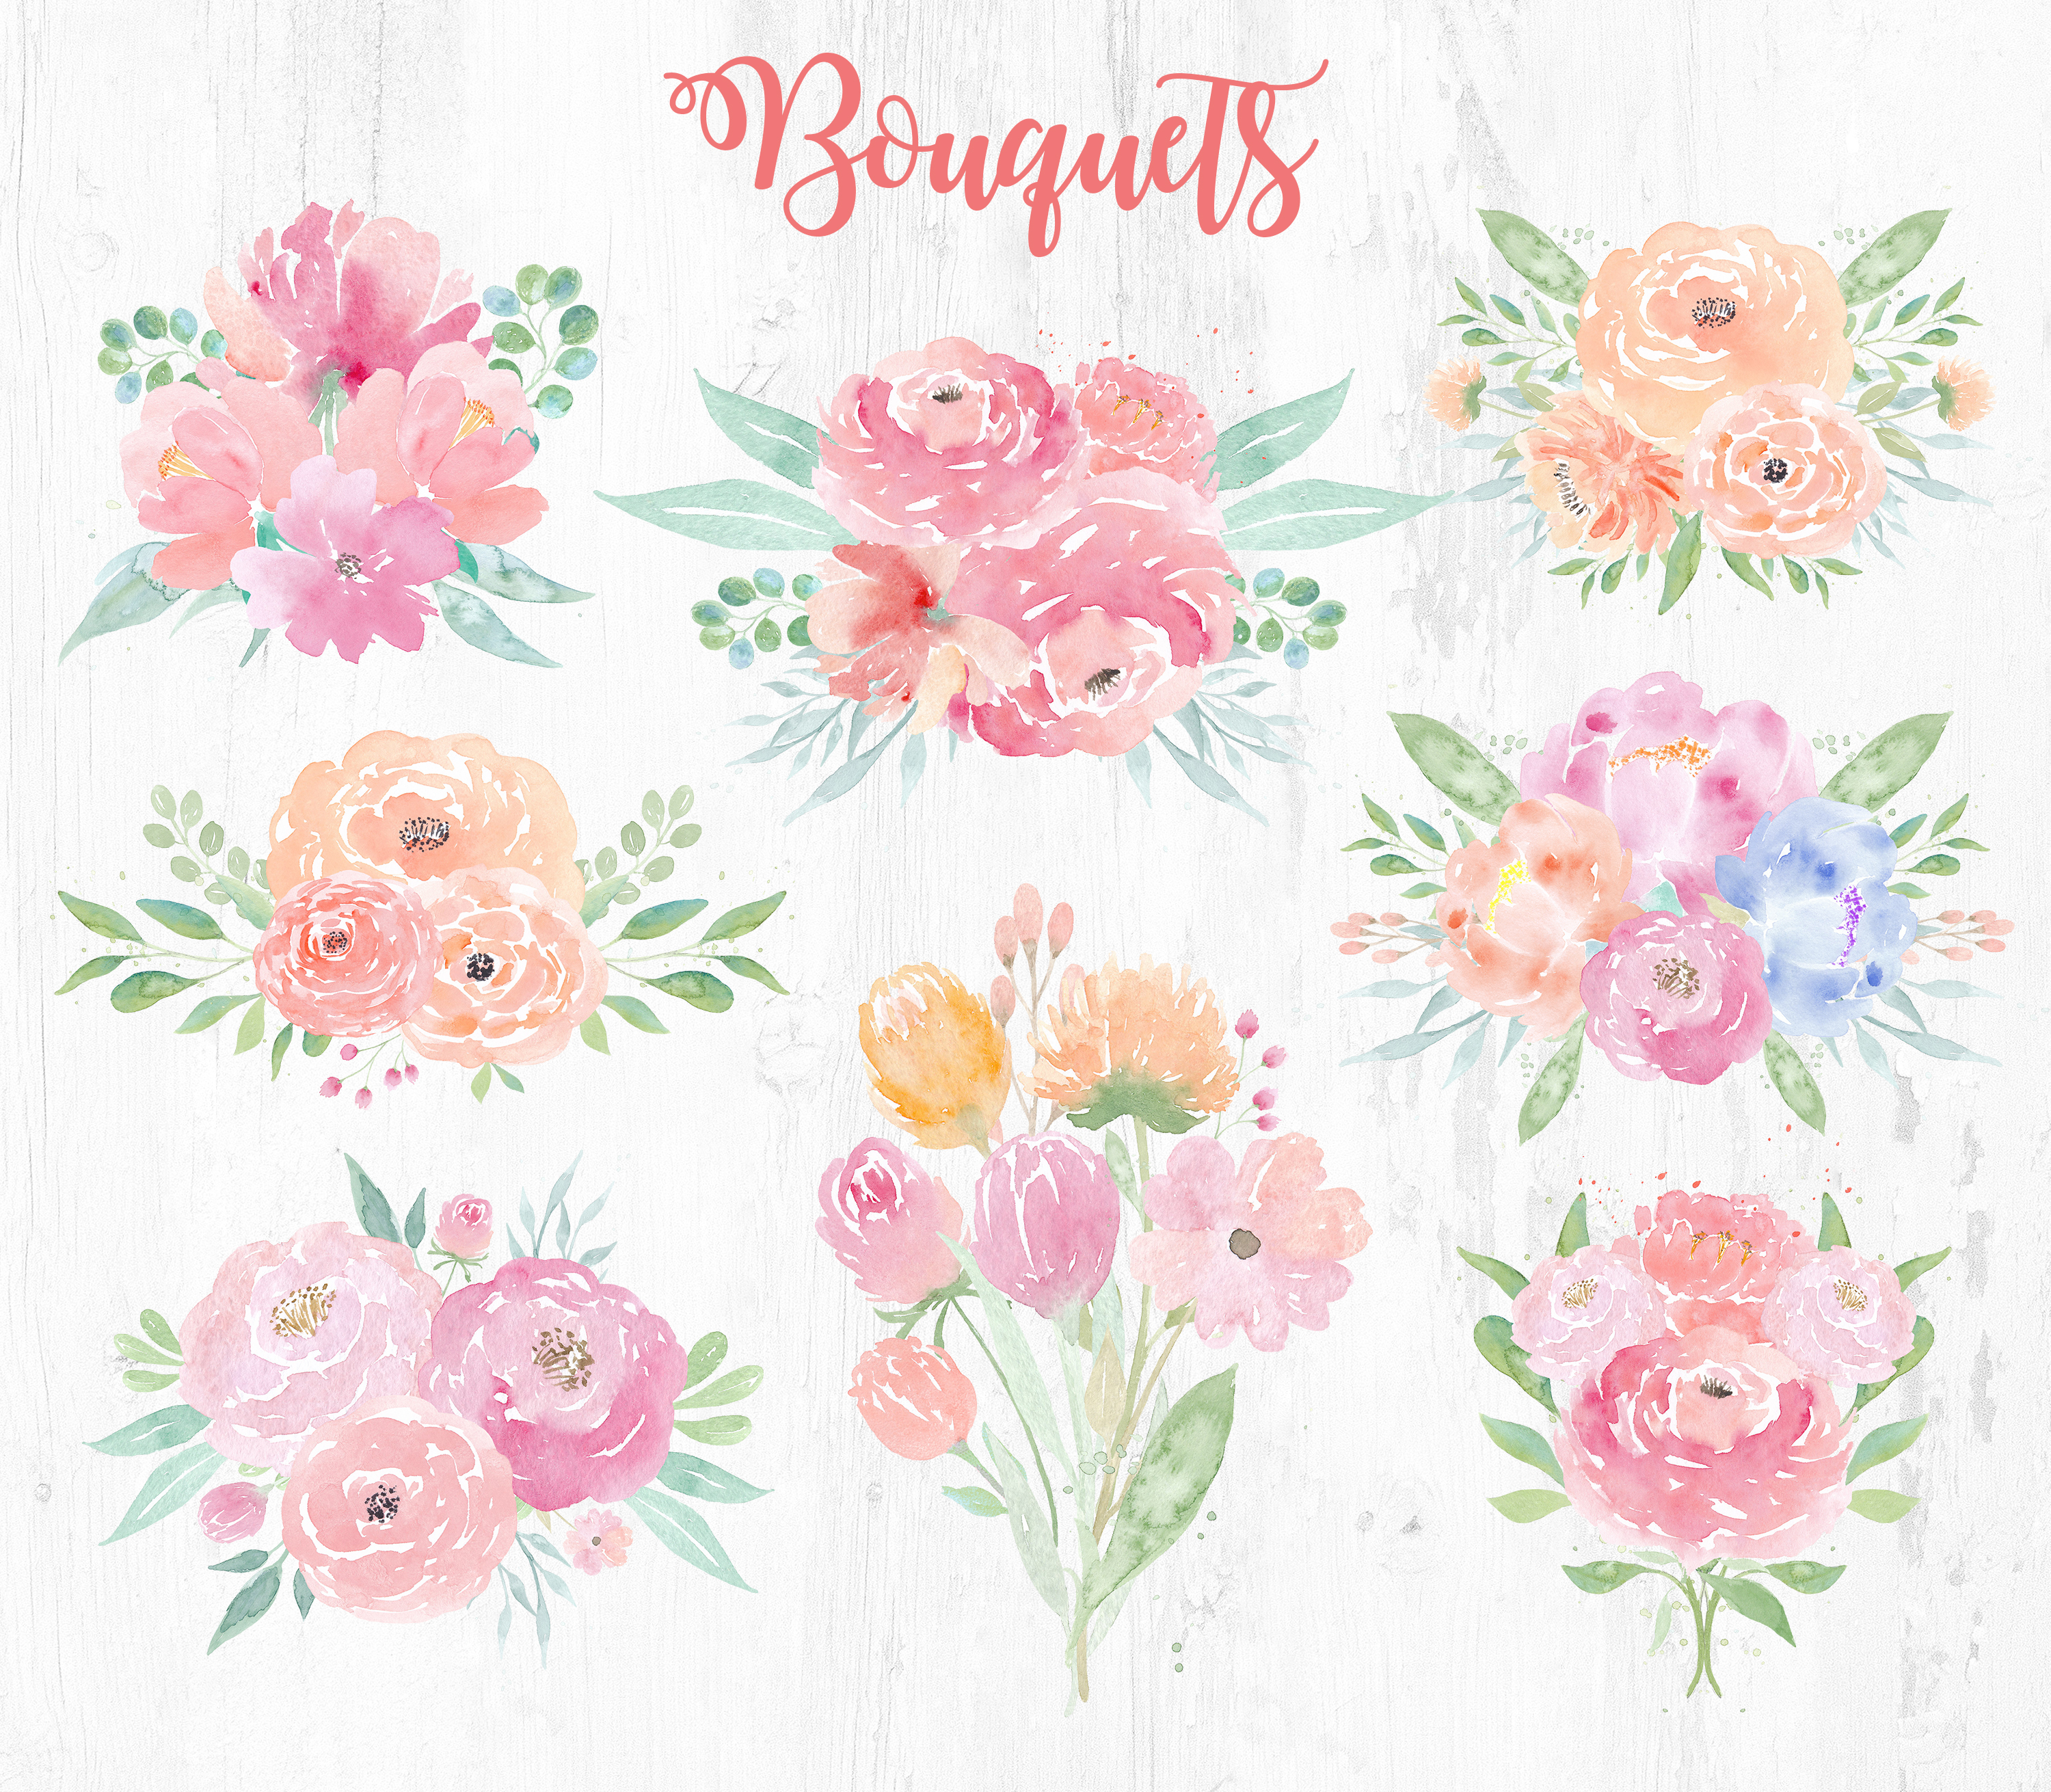 Watercolor Wedding Clipart. Flowers & Textures example image 4